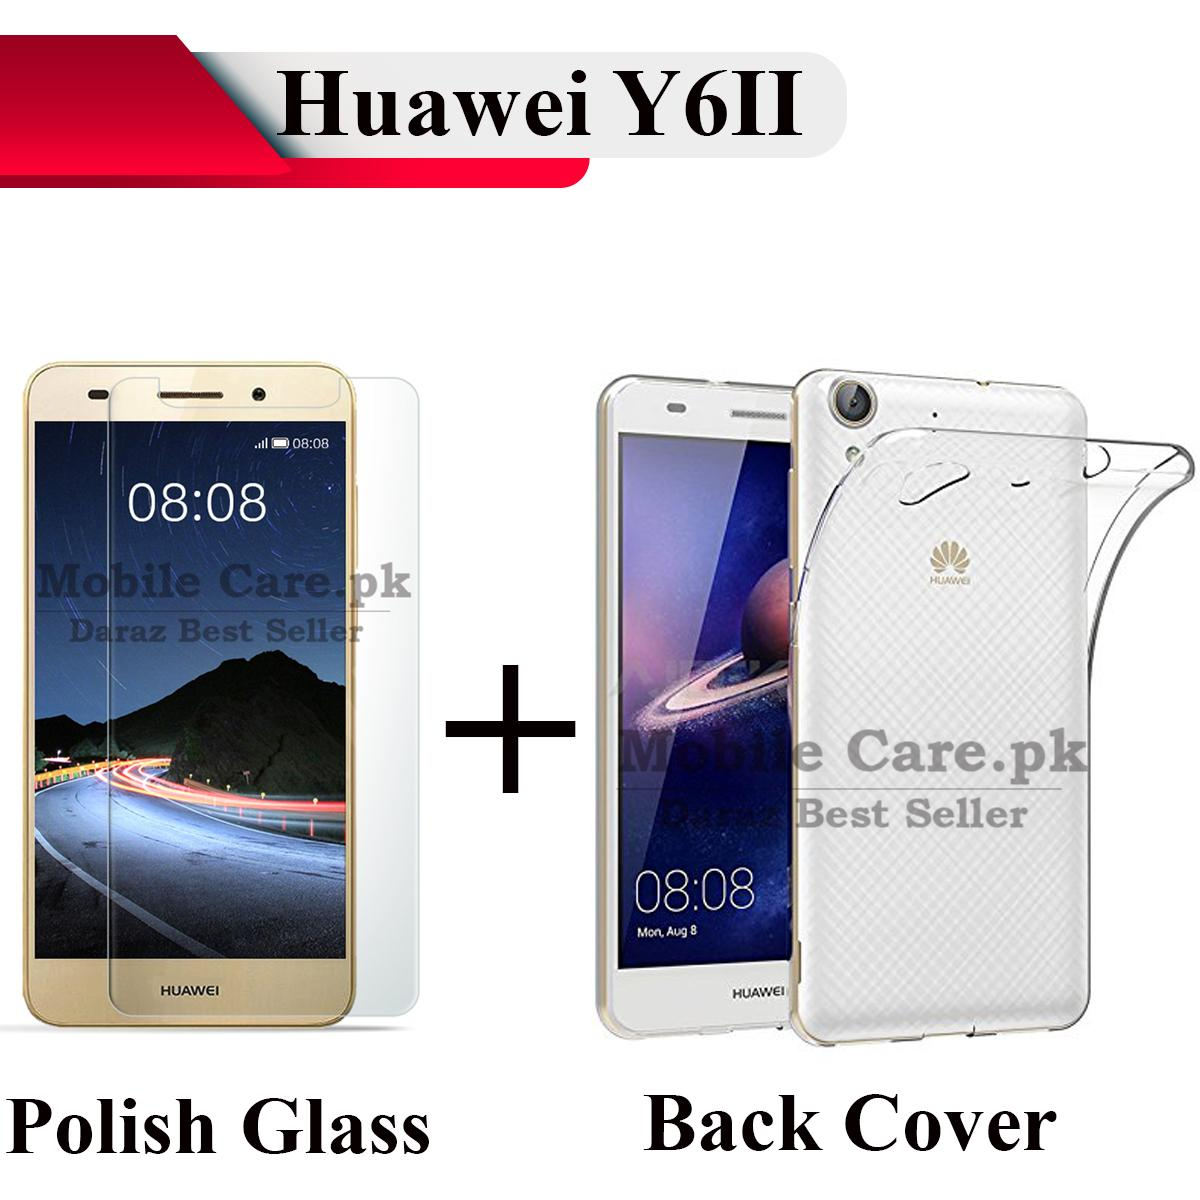 Huawei Y6II (Huawei Y6-2) Tempered Glass Screen Protector Polish Glass Back Cover Transparent Soft Silicone Crystal Clear Case Cover For Huawei ...